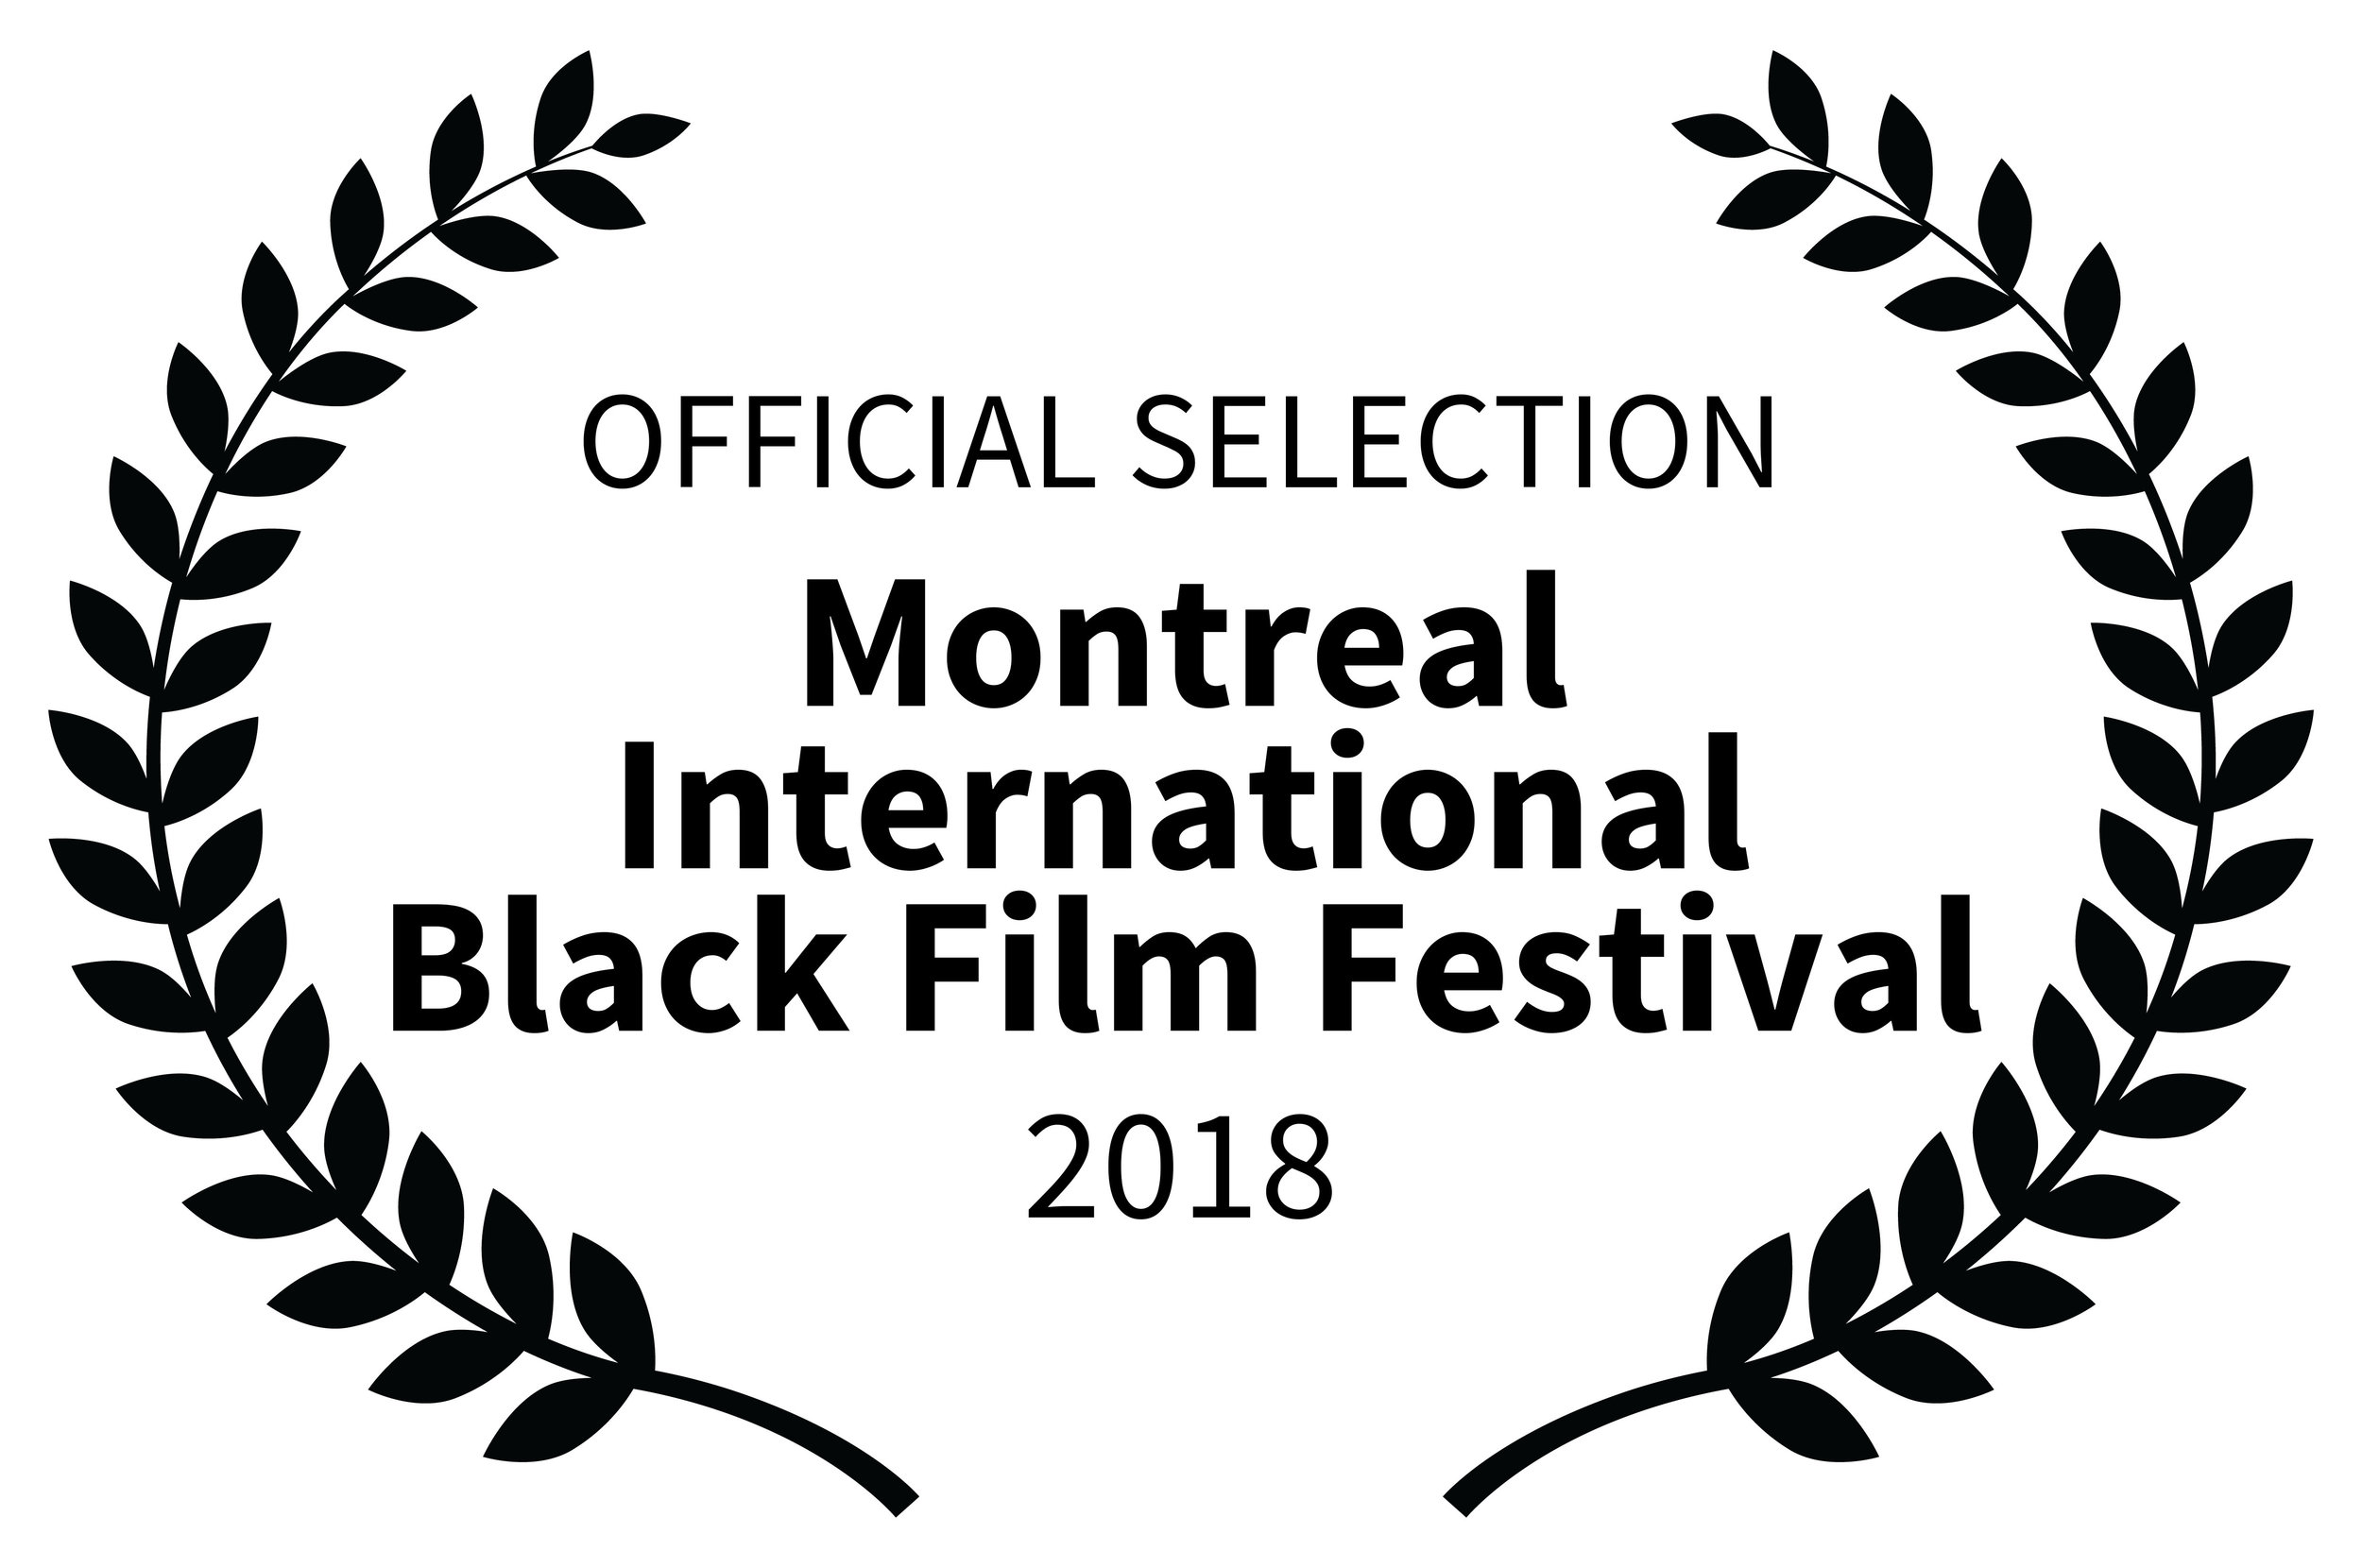 OFFICIALSELECTION-MIBFF_2018.jpg